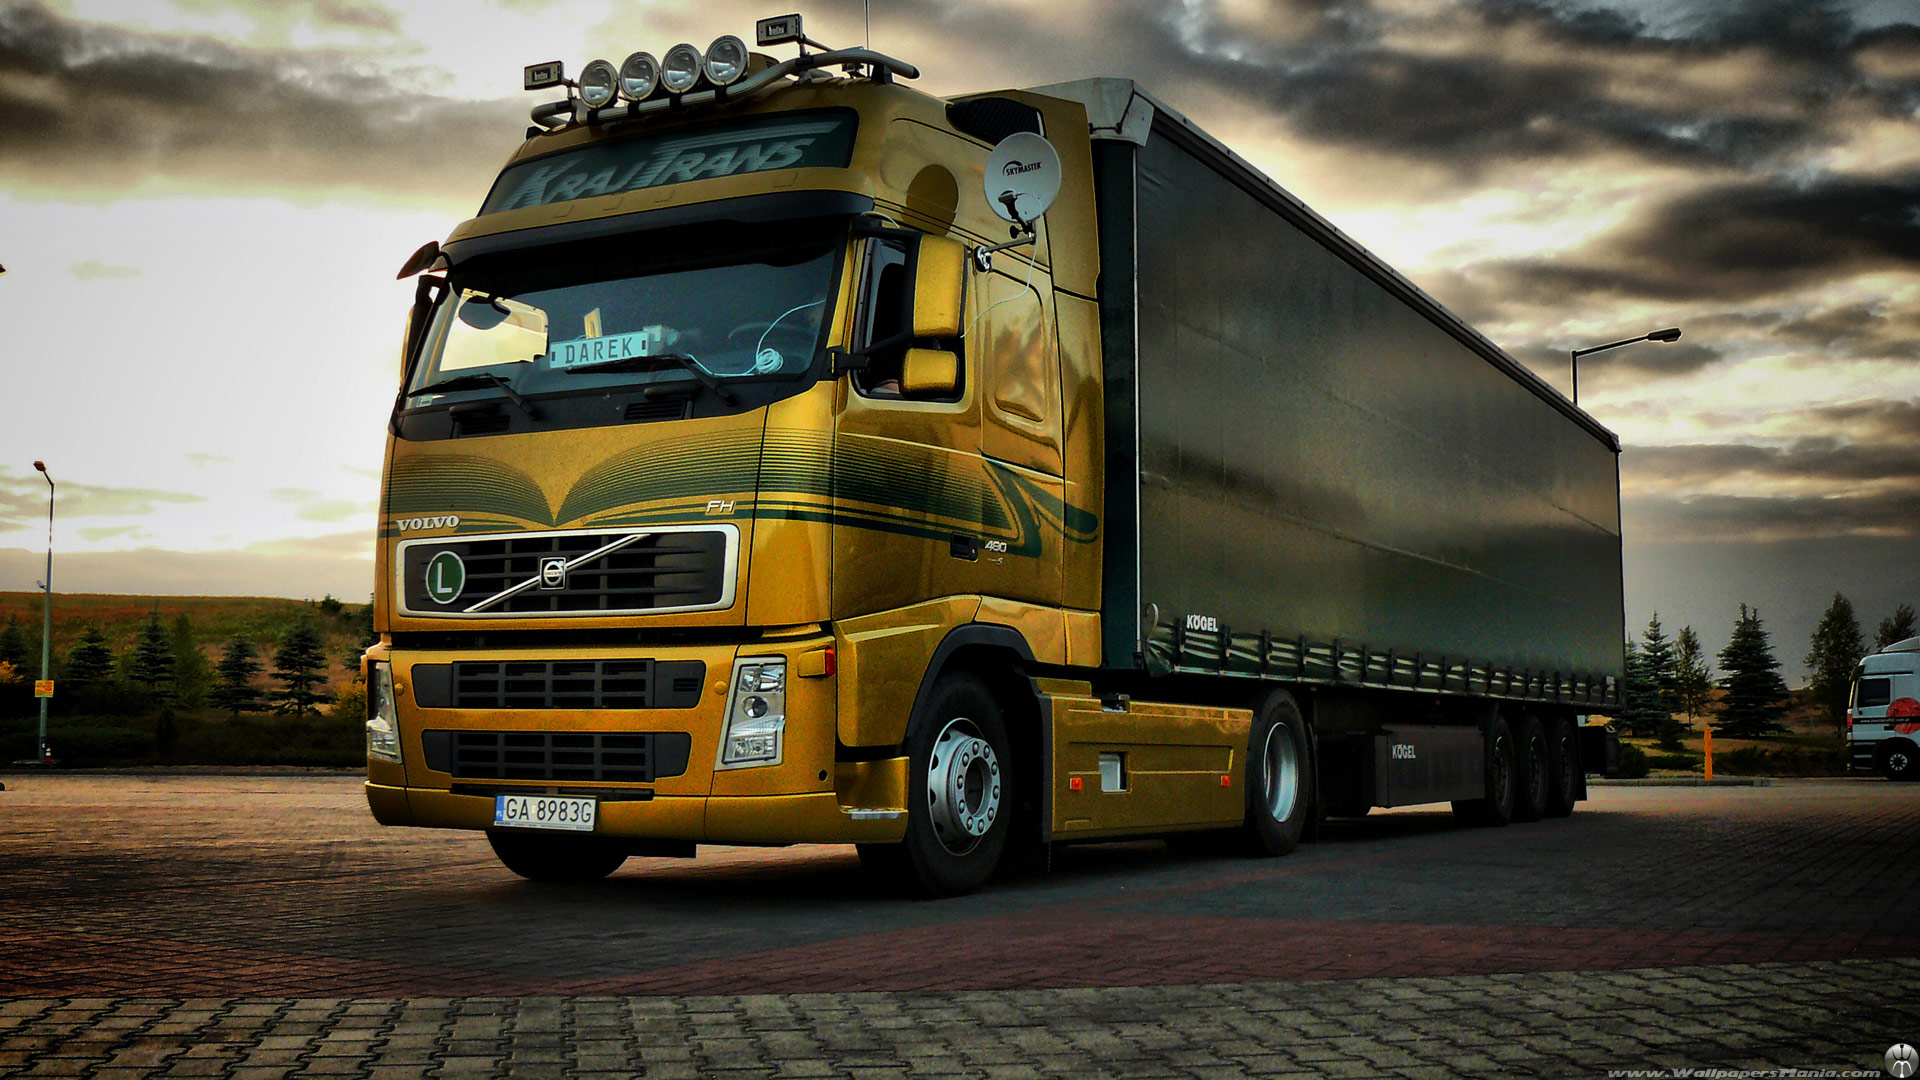 Volvo-Truck-Mania-Trucks-Fh-HD-Wallpapers-1920x1080-Resolution